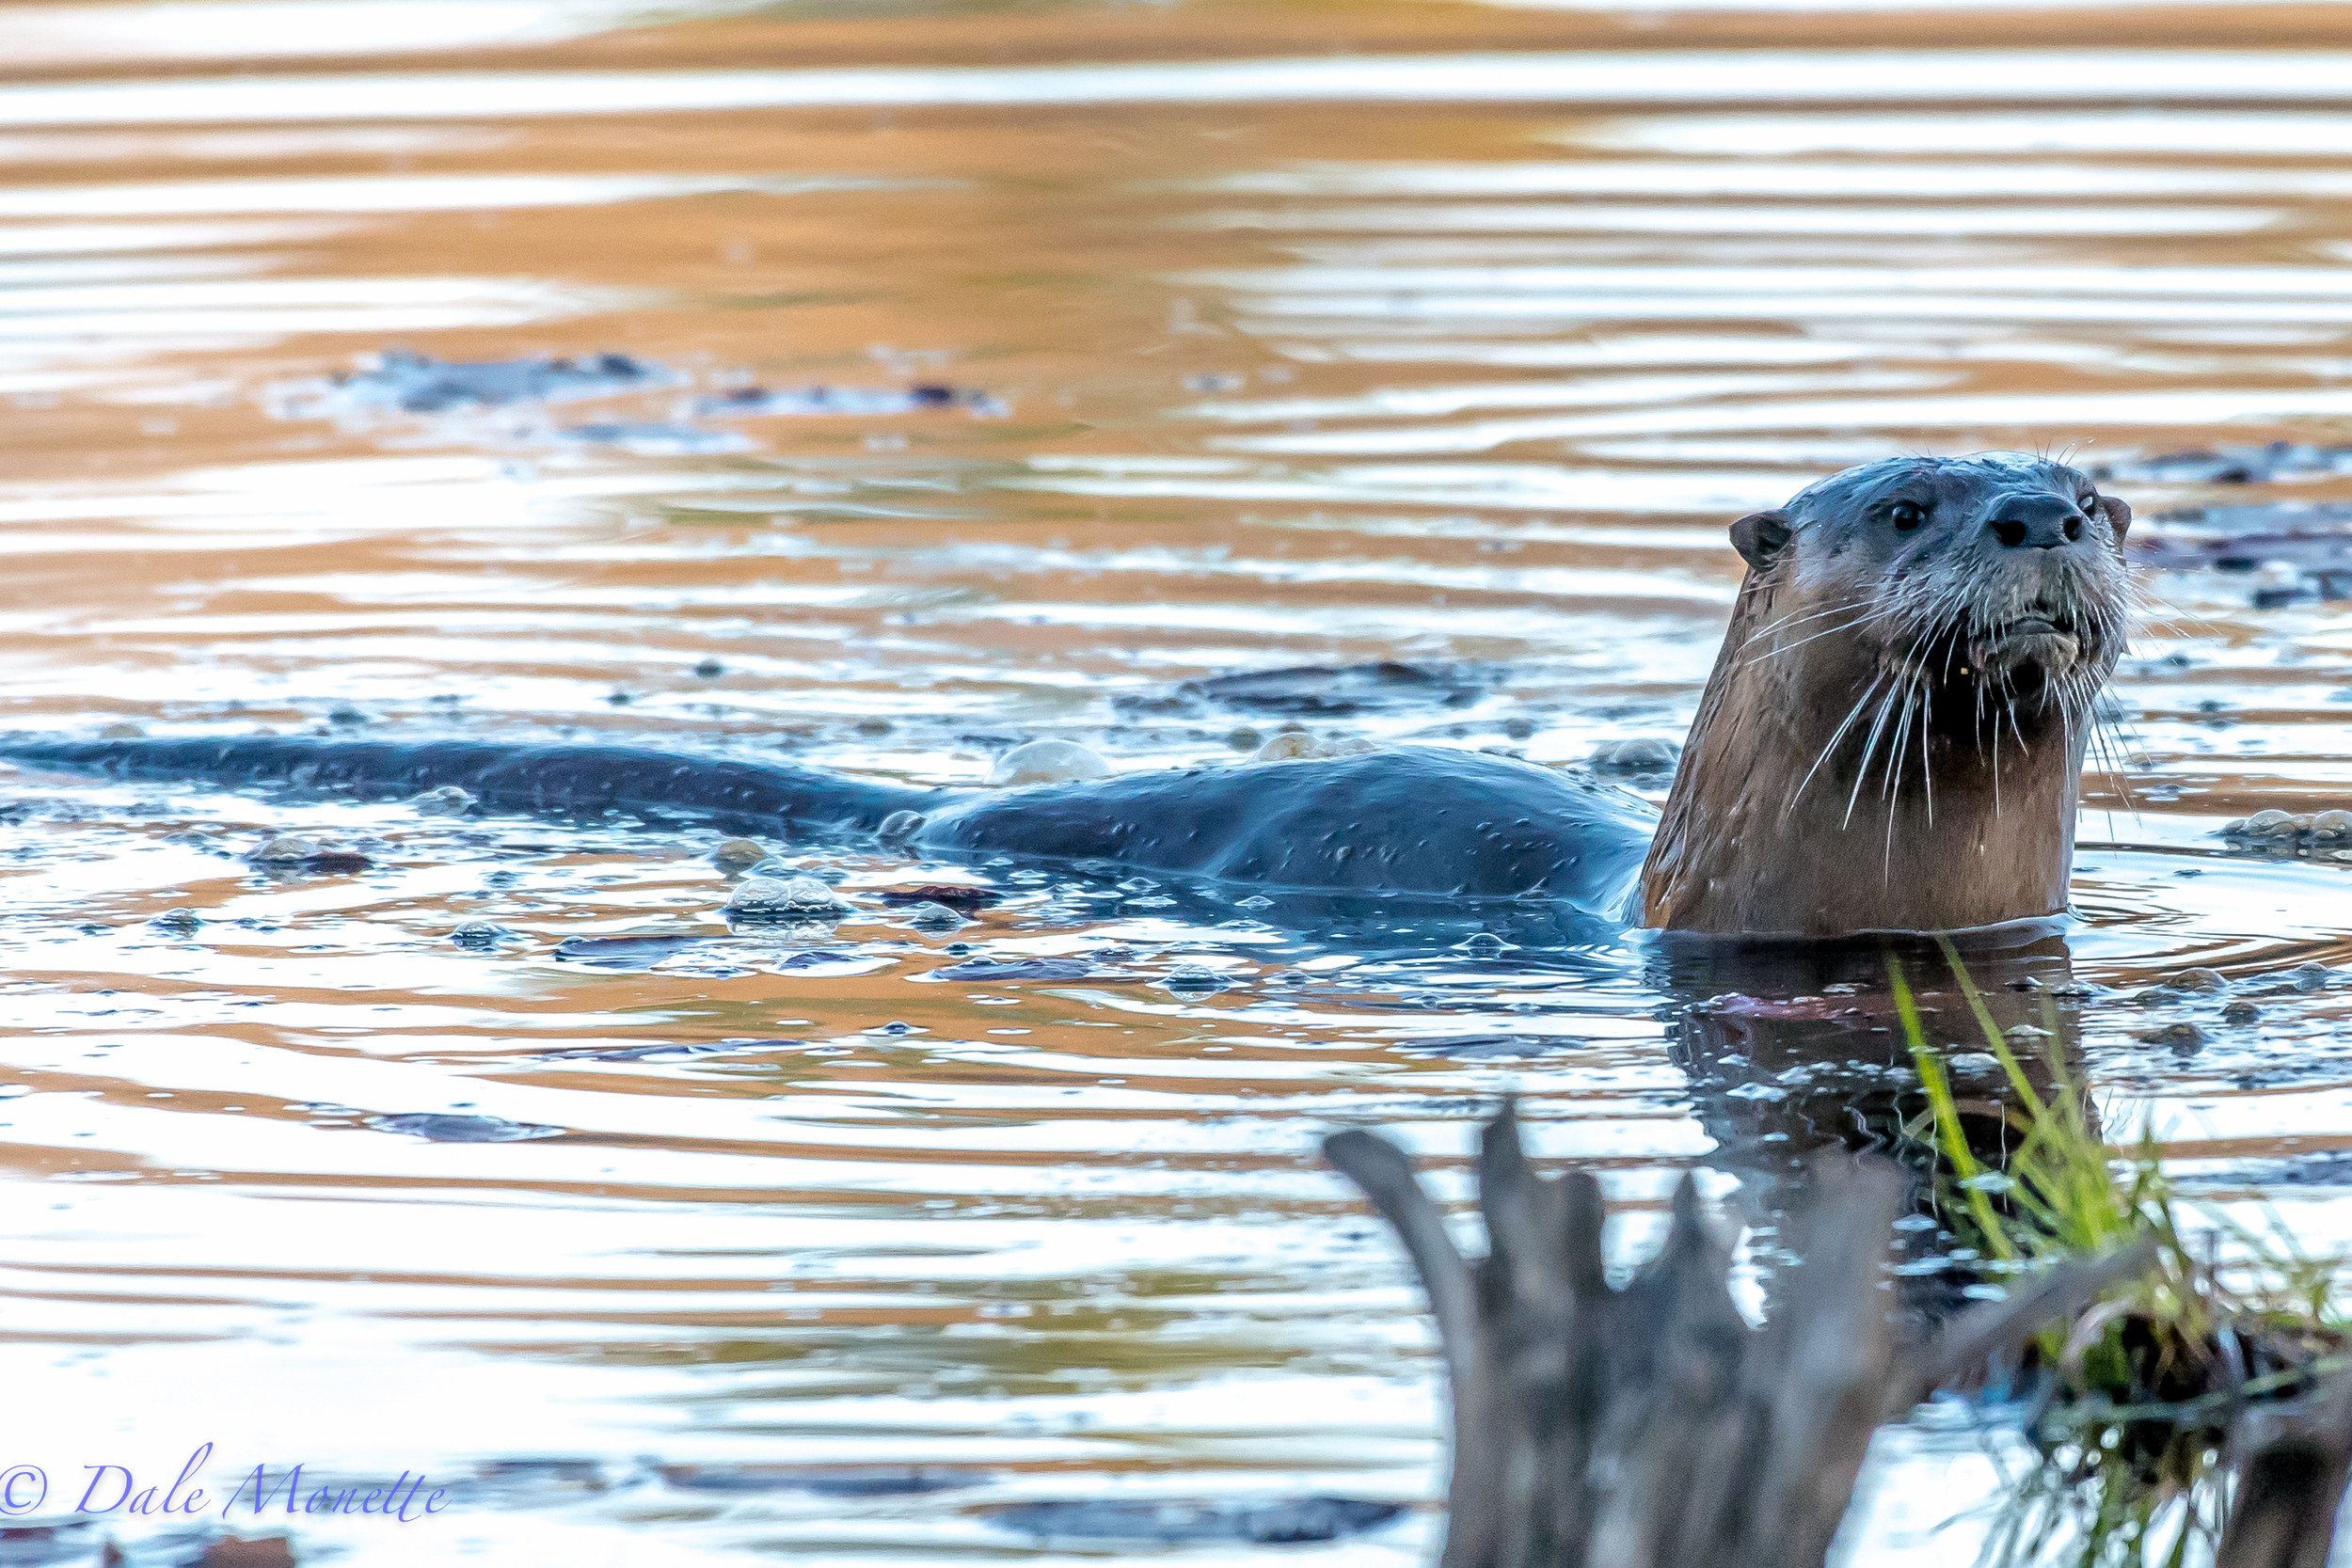 Five river otters magically appeared while I was sitting at the end of a swamp in the Quabbin. I watched them tear the place up for 90 minutes catching fish and playing. They also came out of the water to mark their territory 3 times in the 90 minutes. 4/23/16